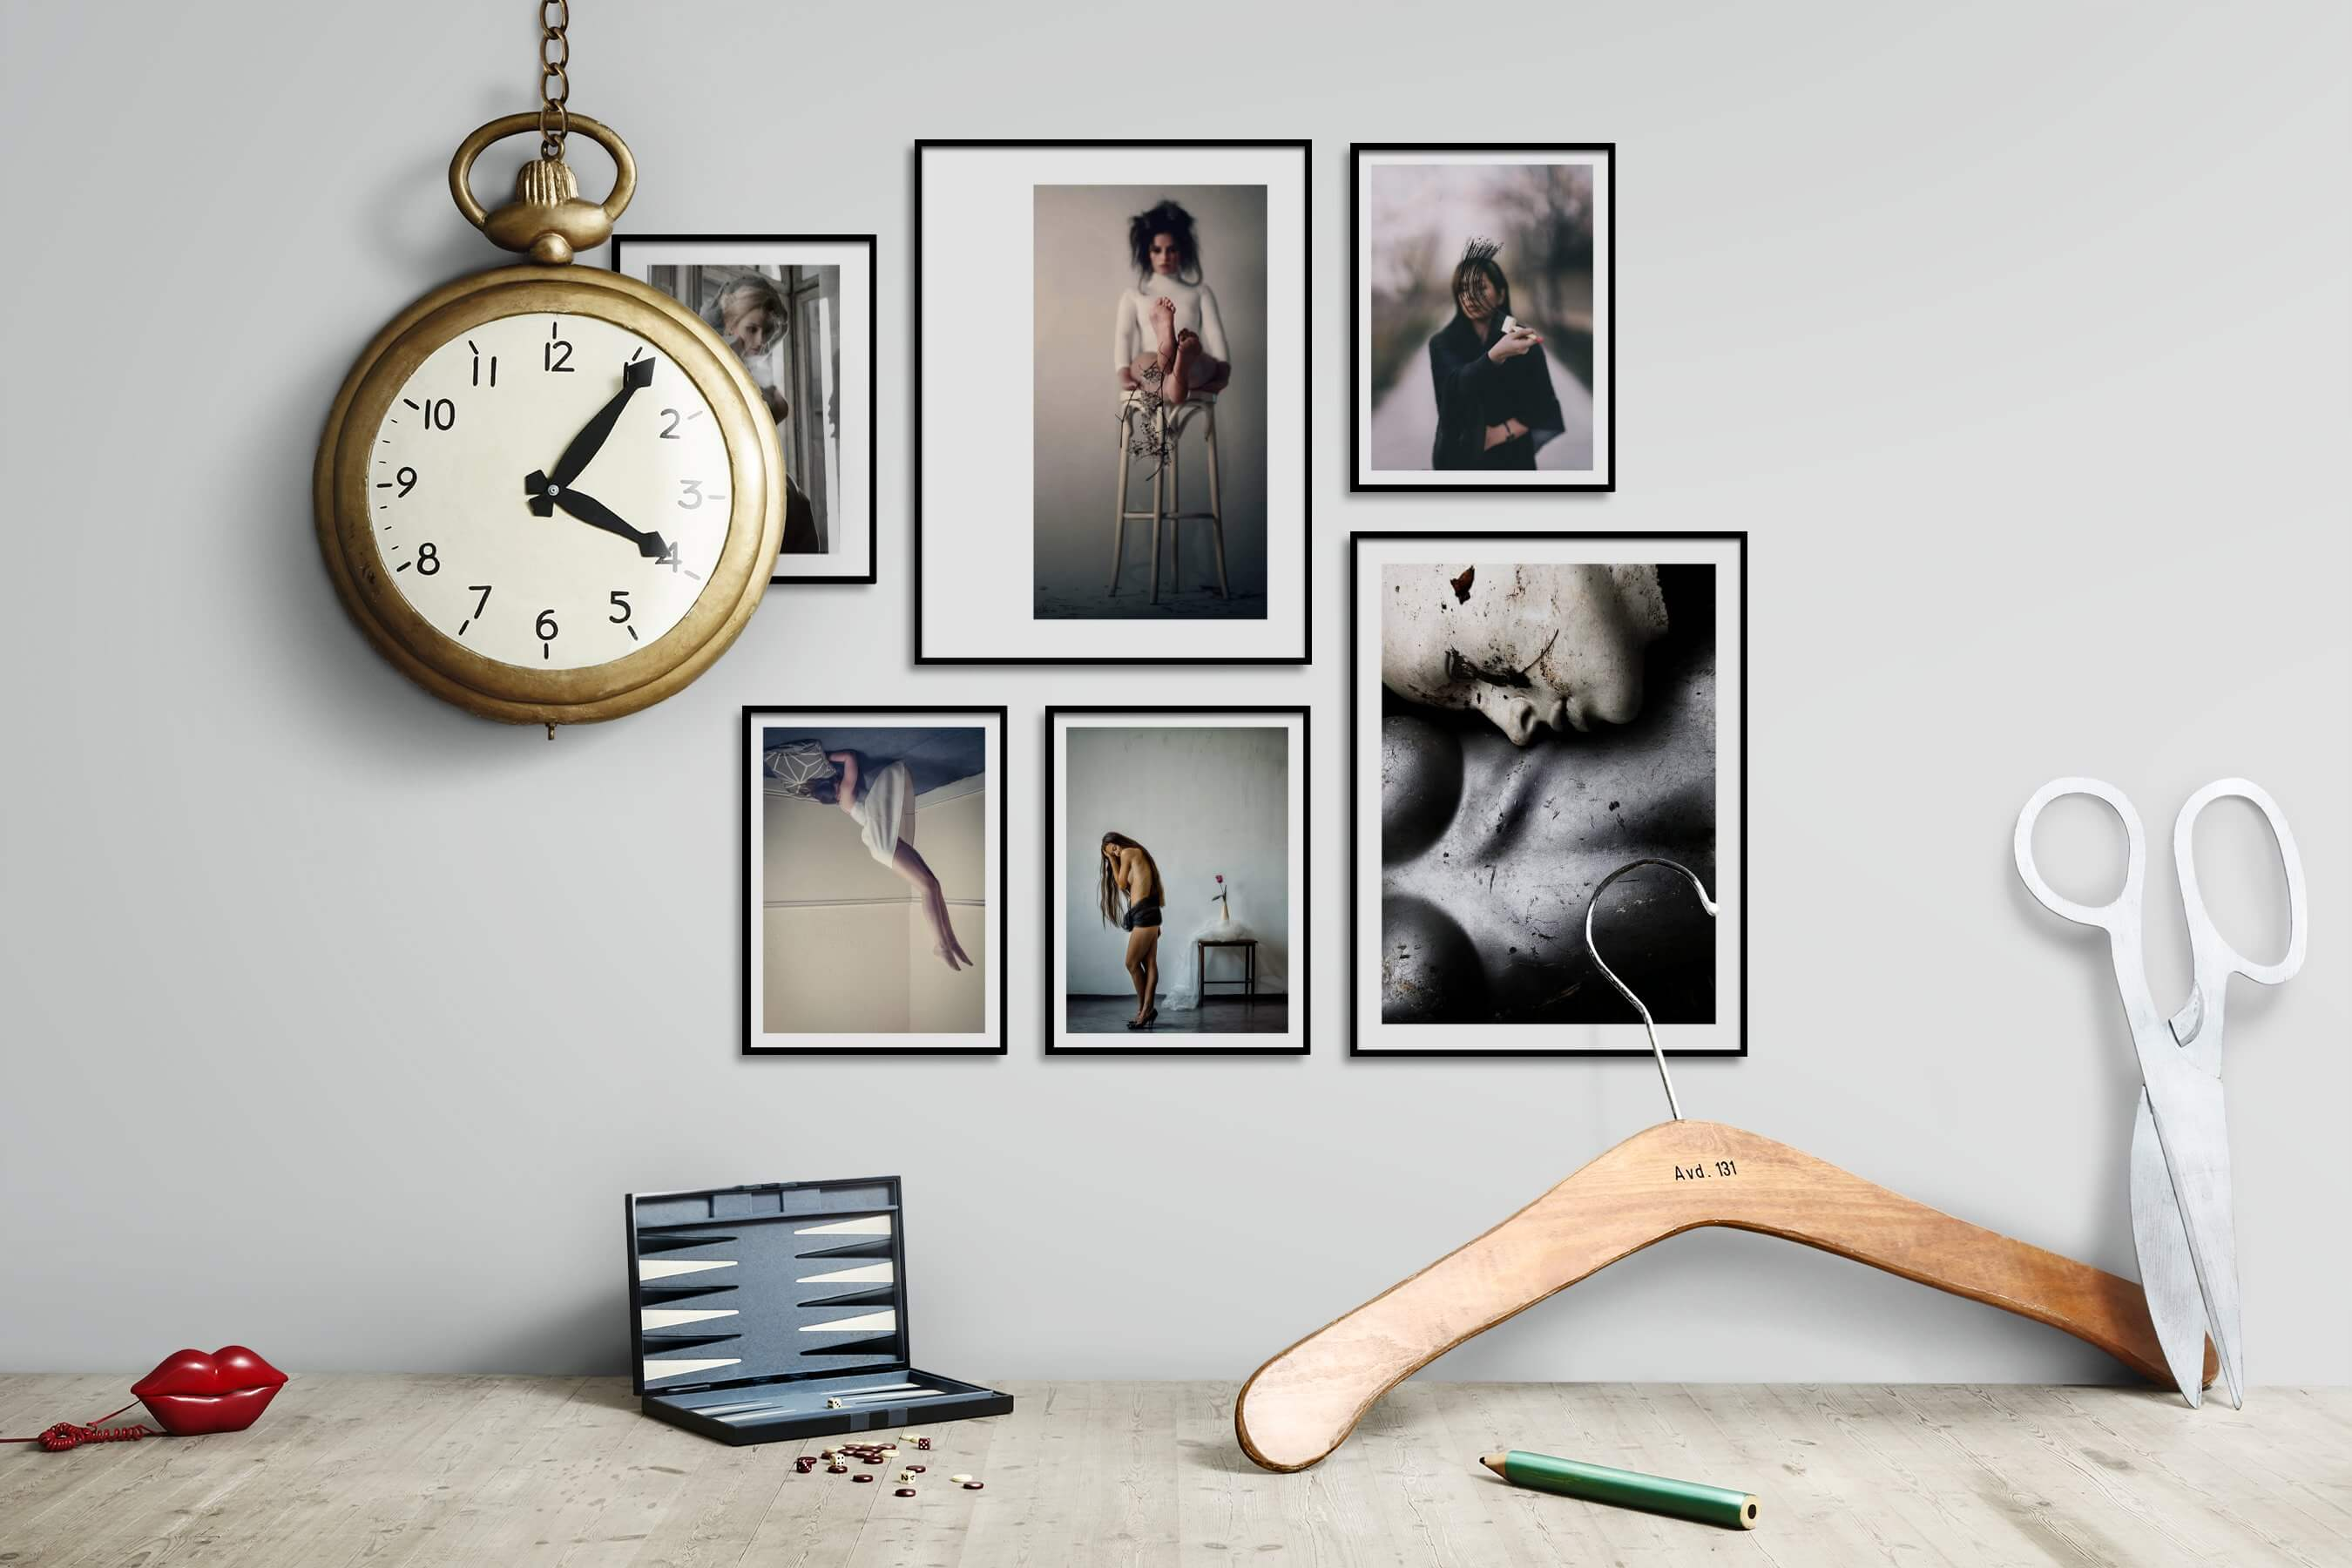 Gallery wall idea with six framed pictures arranged on a wall depicting Artsy, Fashion & Beauty, For the Moderate, and Vintage